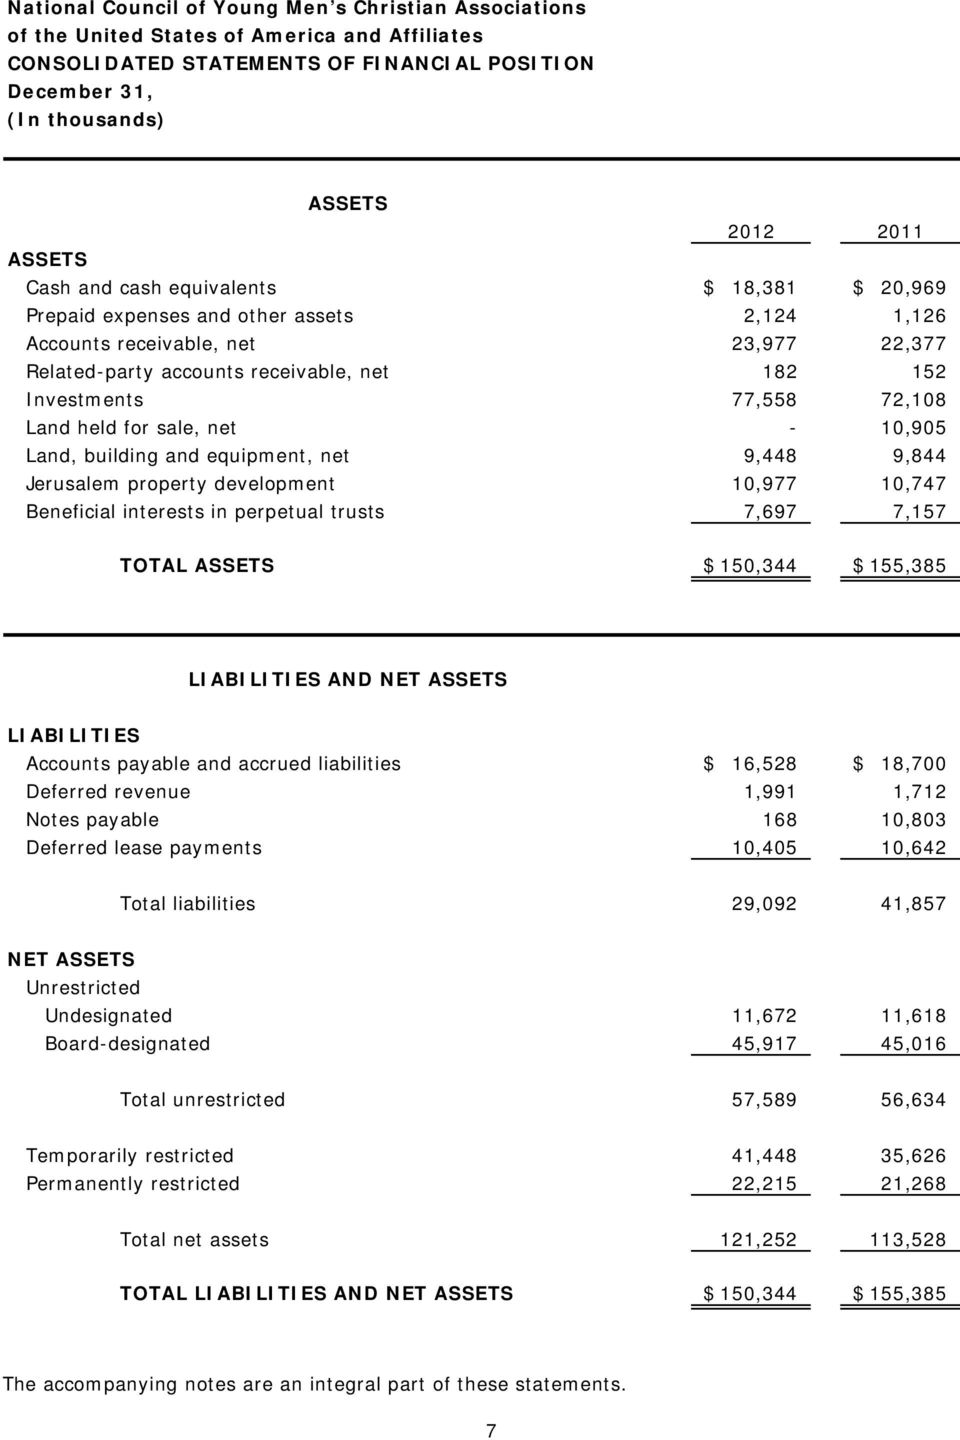 10,977 10,747 Beneficial interests in perpetual trusts 7,697 7,157 TOTAL ASSETS $ 150,344 $ 155,385 LIABILITIES AND NET ASSETS LIABILITIES Accounts payable and accrued liabilities $ 16,528 $ 18,700